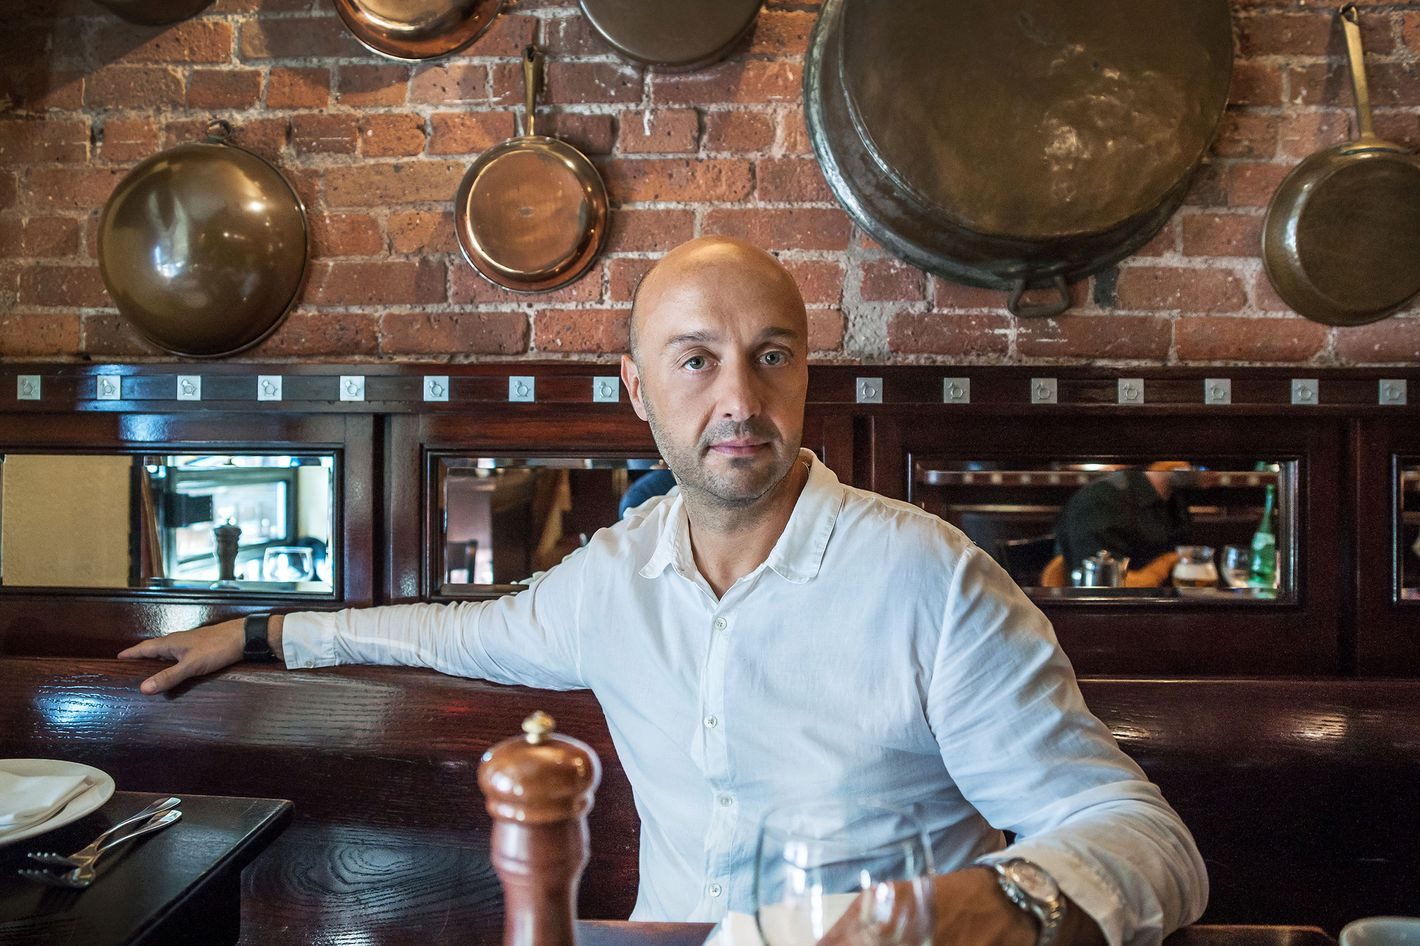 Food spoilage at Del Posto will cost more than $50,000.